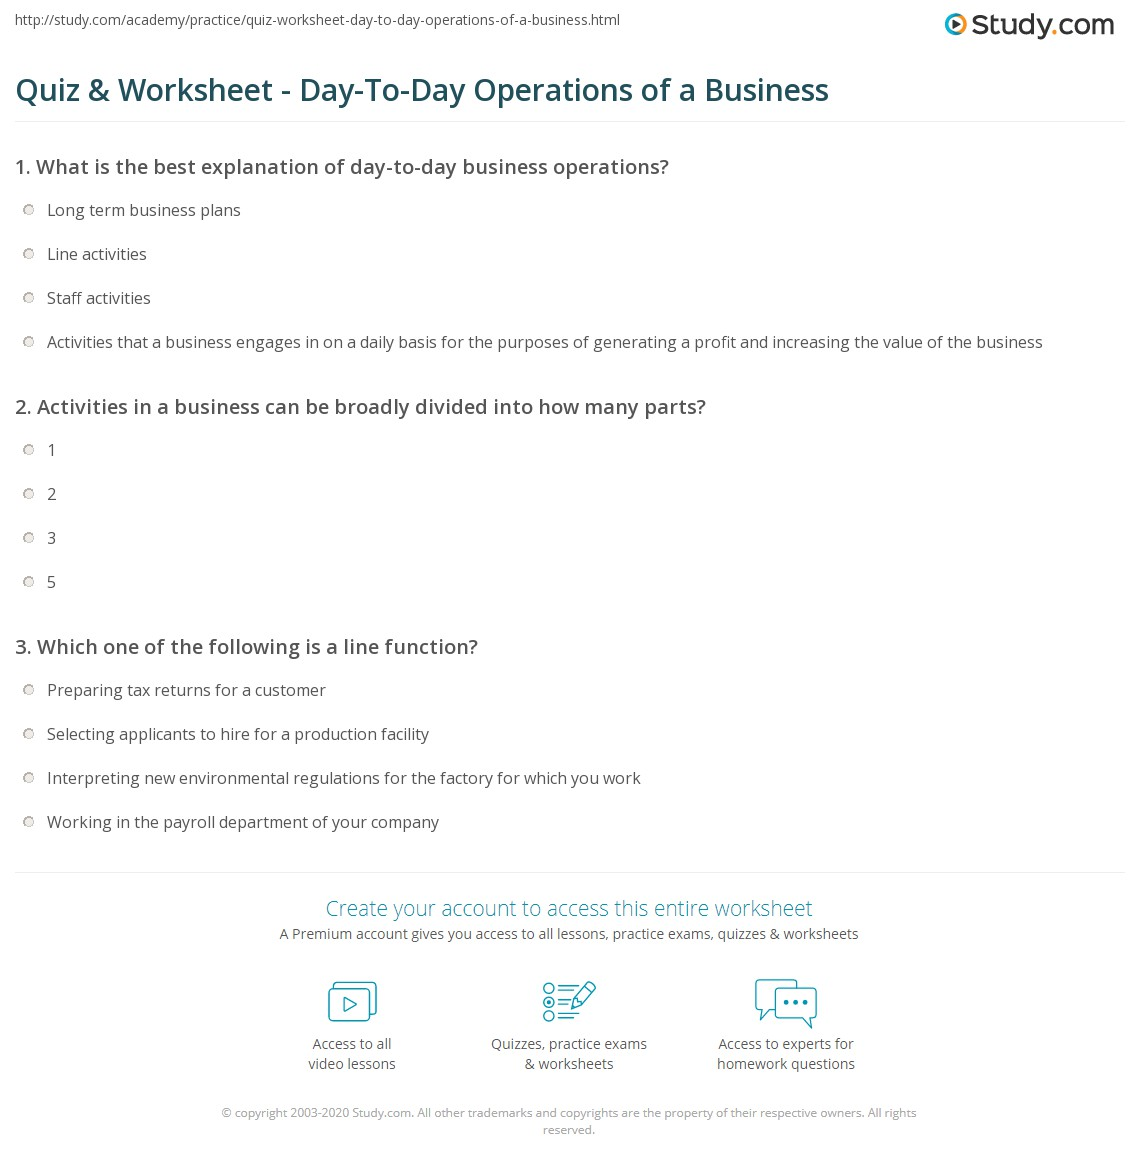 quiz worksheet day to day operations of a business. Black Bedroom Furniture Sets. Home Design Ideas